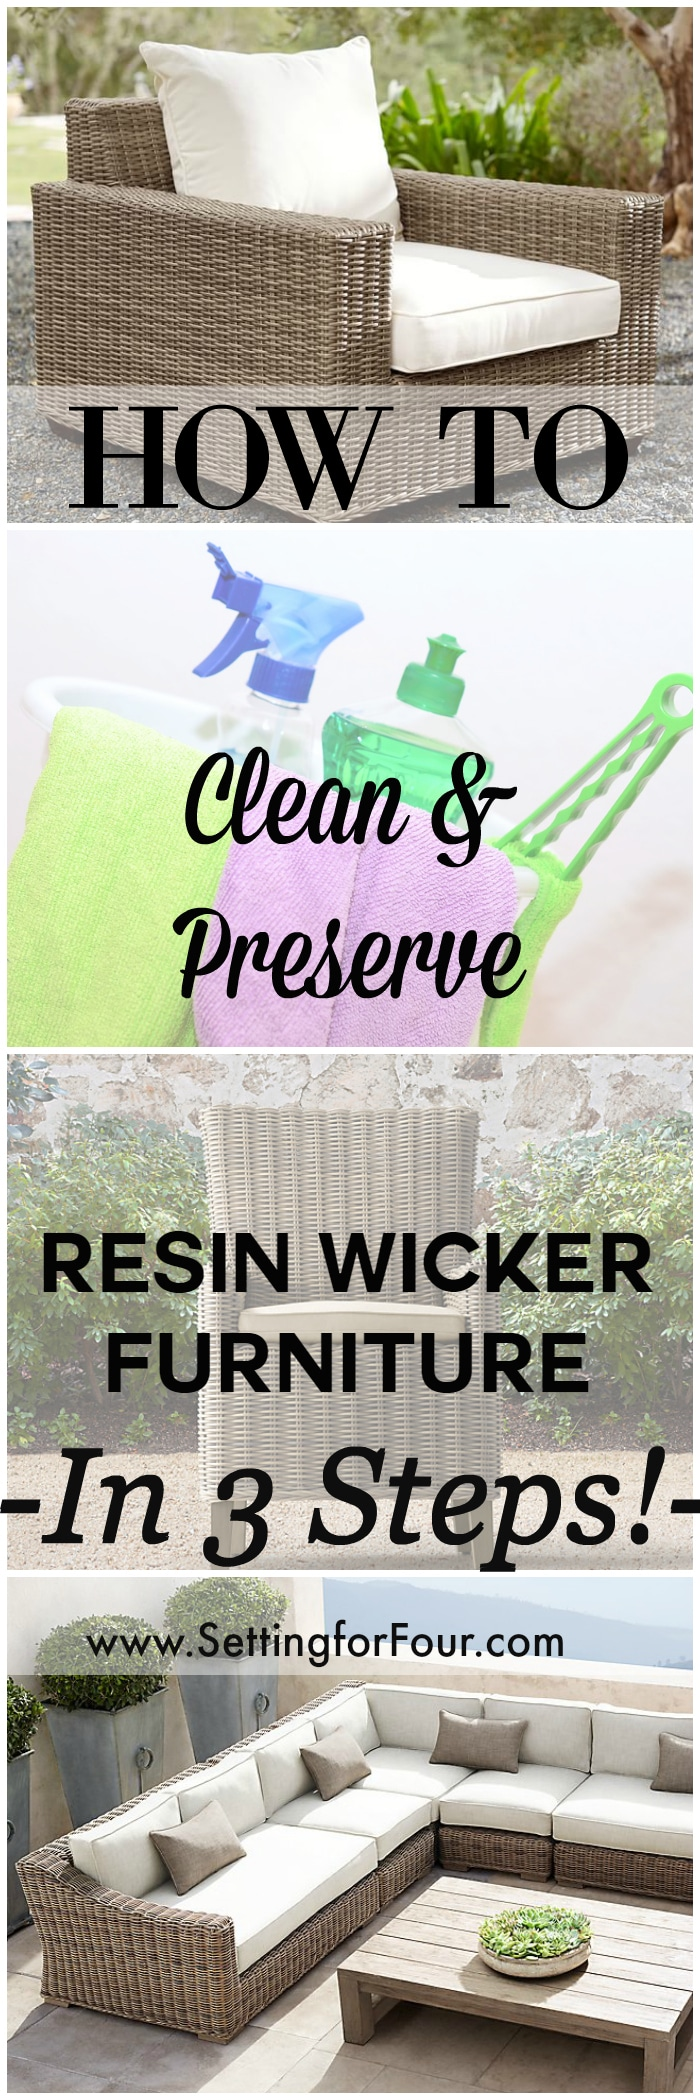 How to: Clean & Preserve Resin Wicker Furniture In 3 Steps